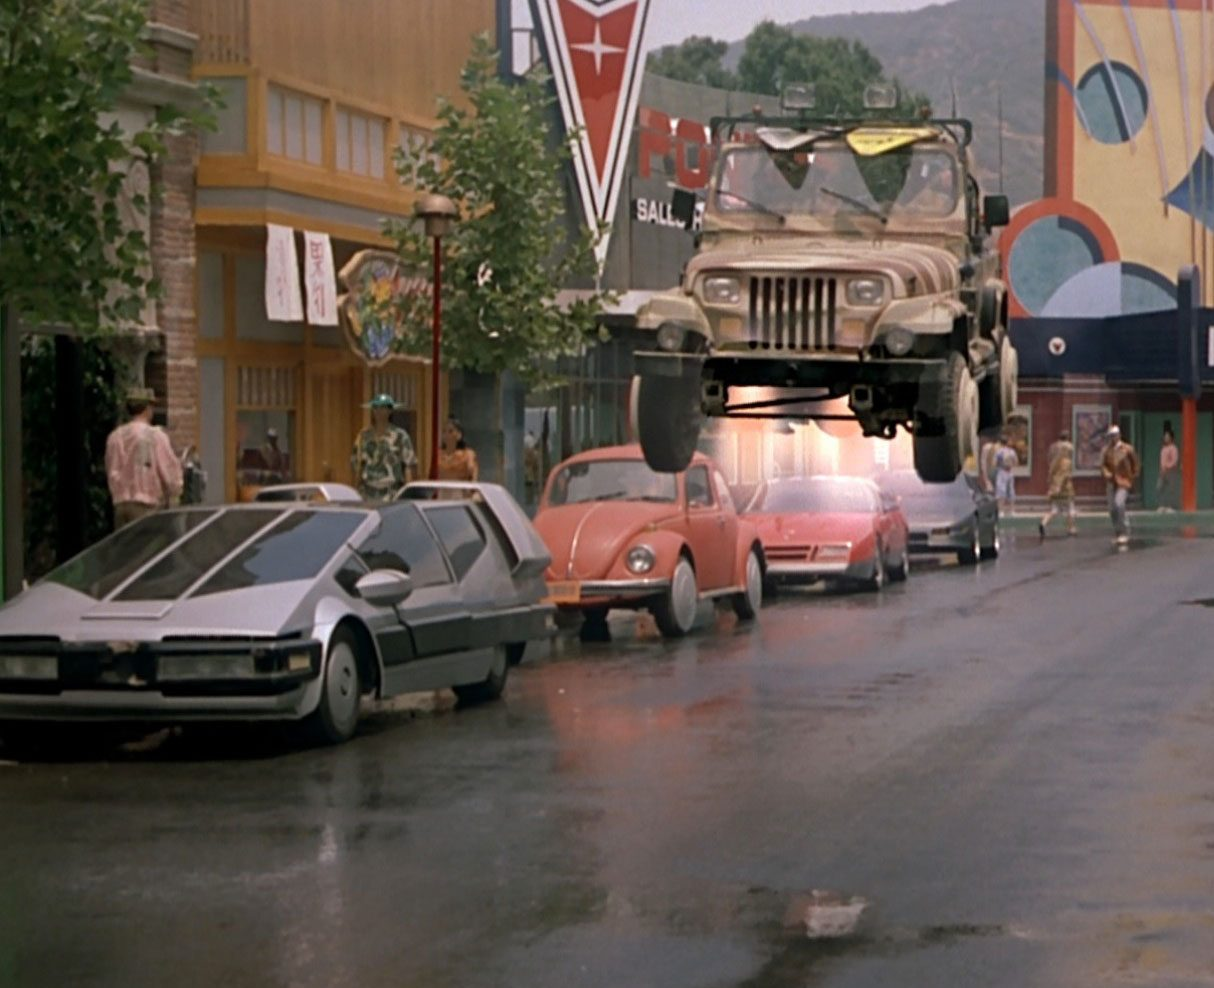 Scnet bttf2 0809 e1617111059243 20 Fascinating Futuristic Facts About Back to the Future Part II